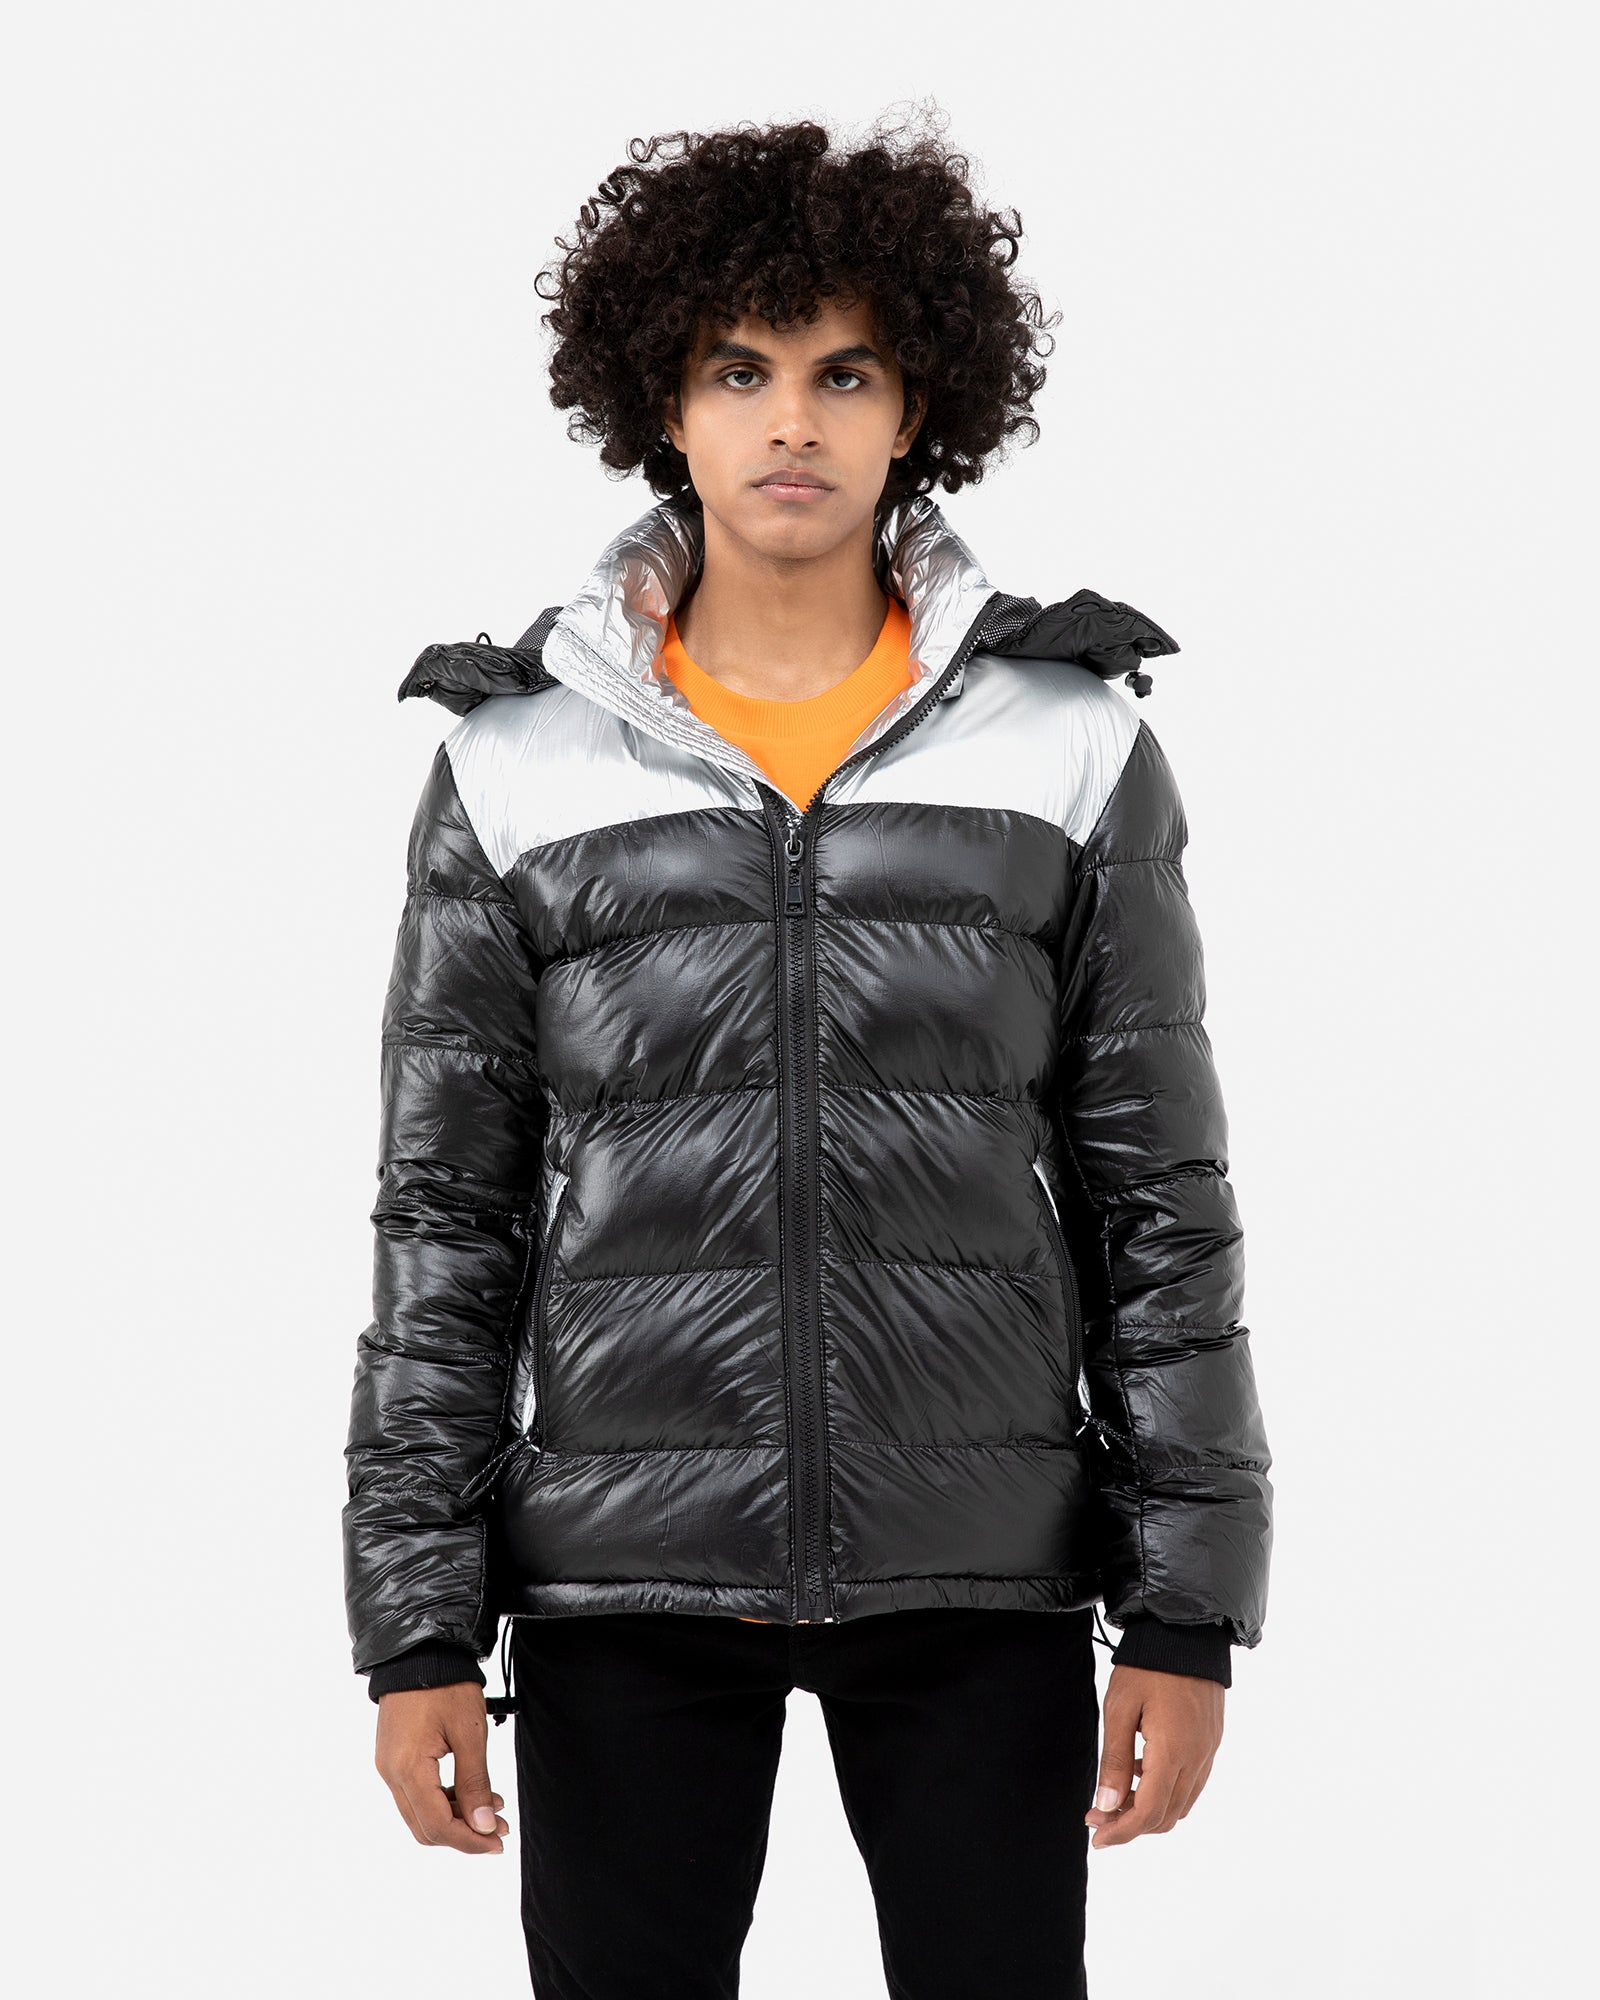 Futuristic Hooded Puffer Jacket